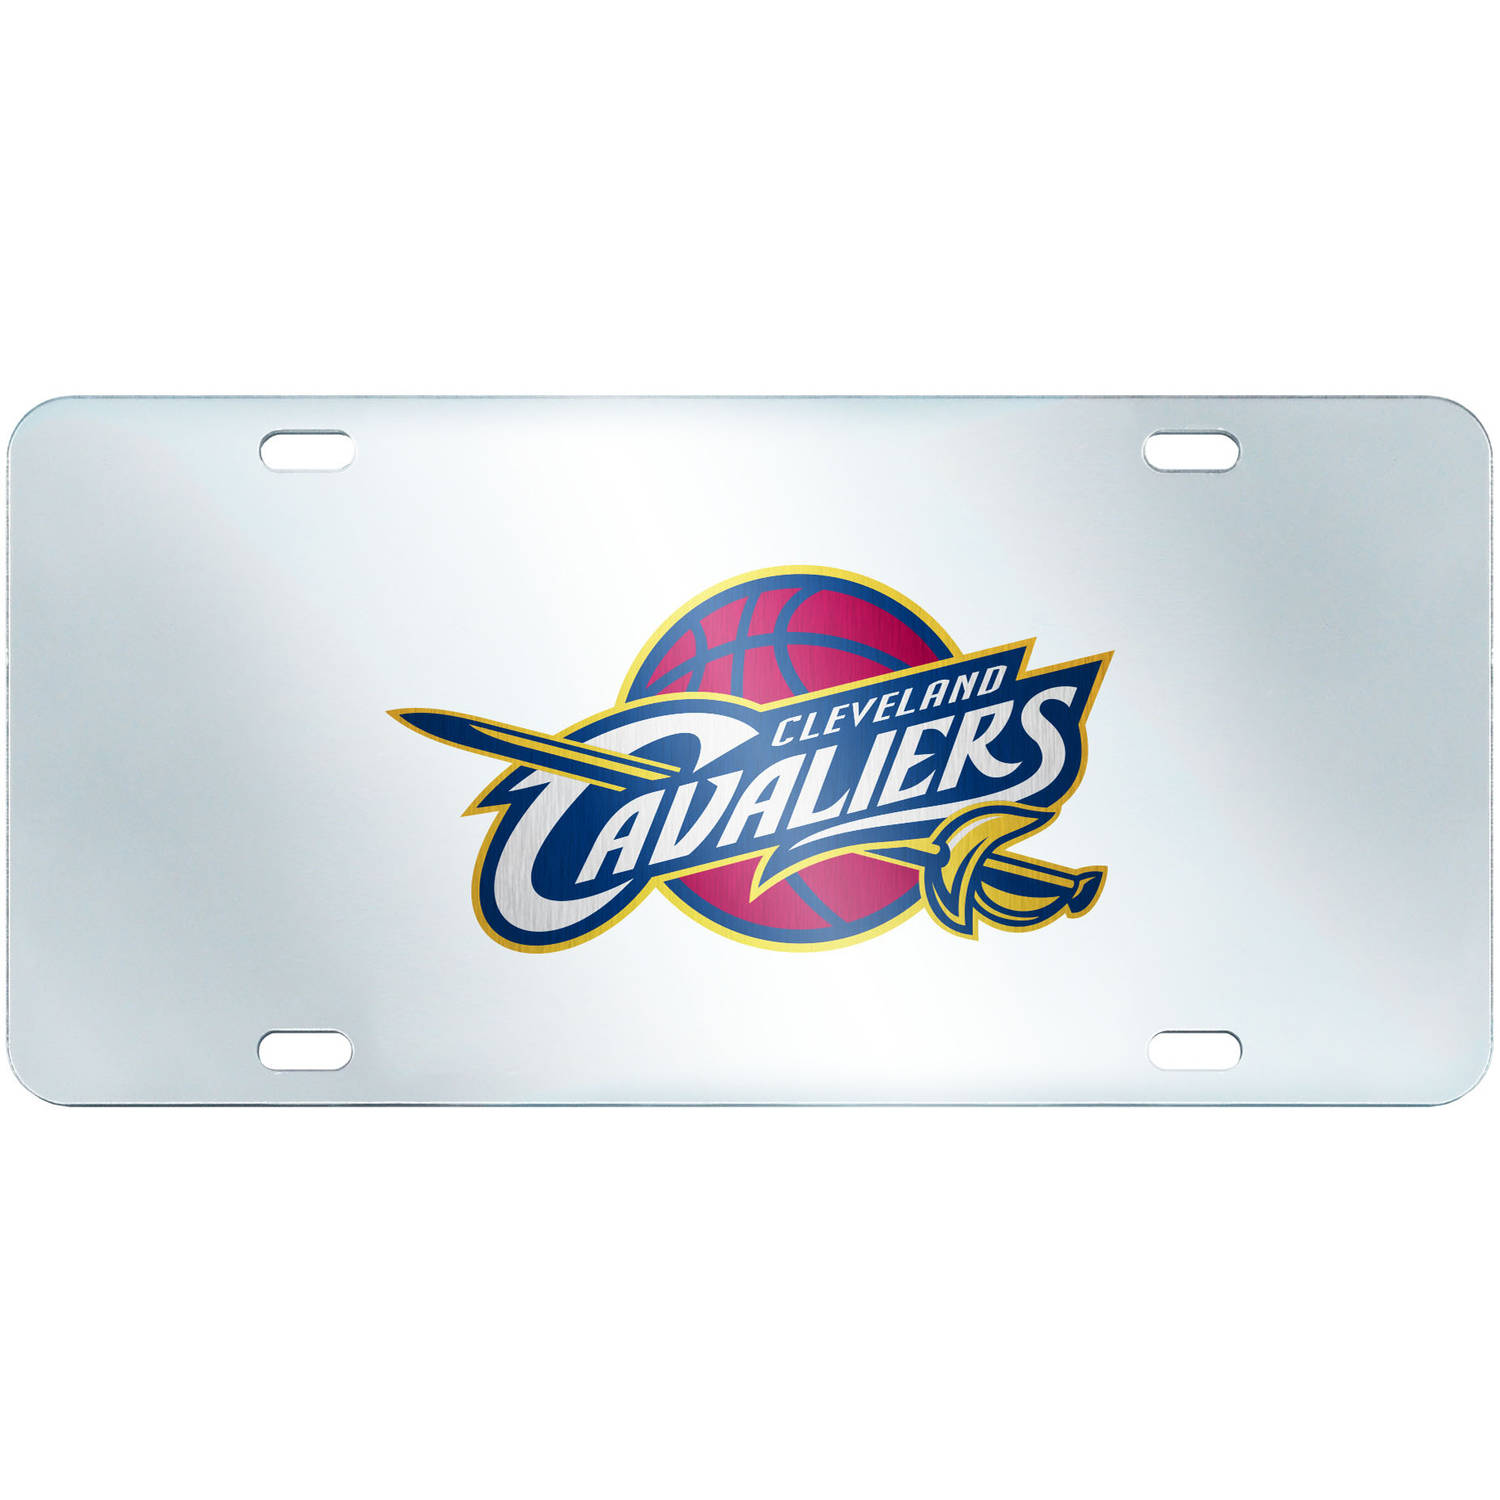 NBA Cleveland Cavaliers License Plate